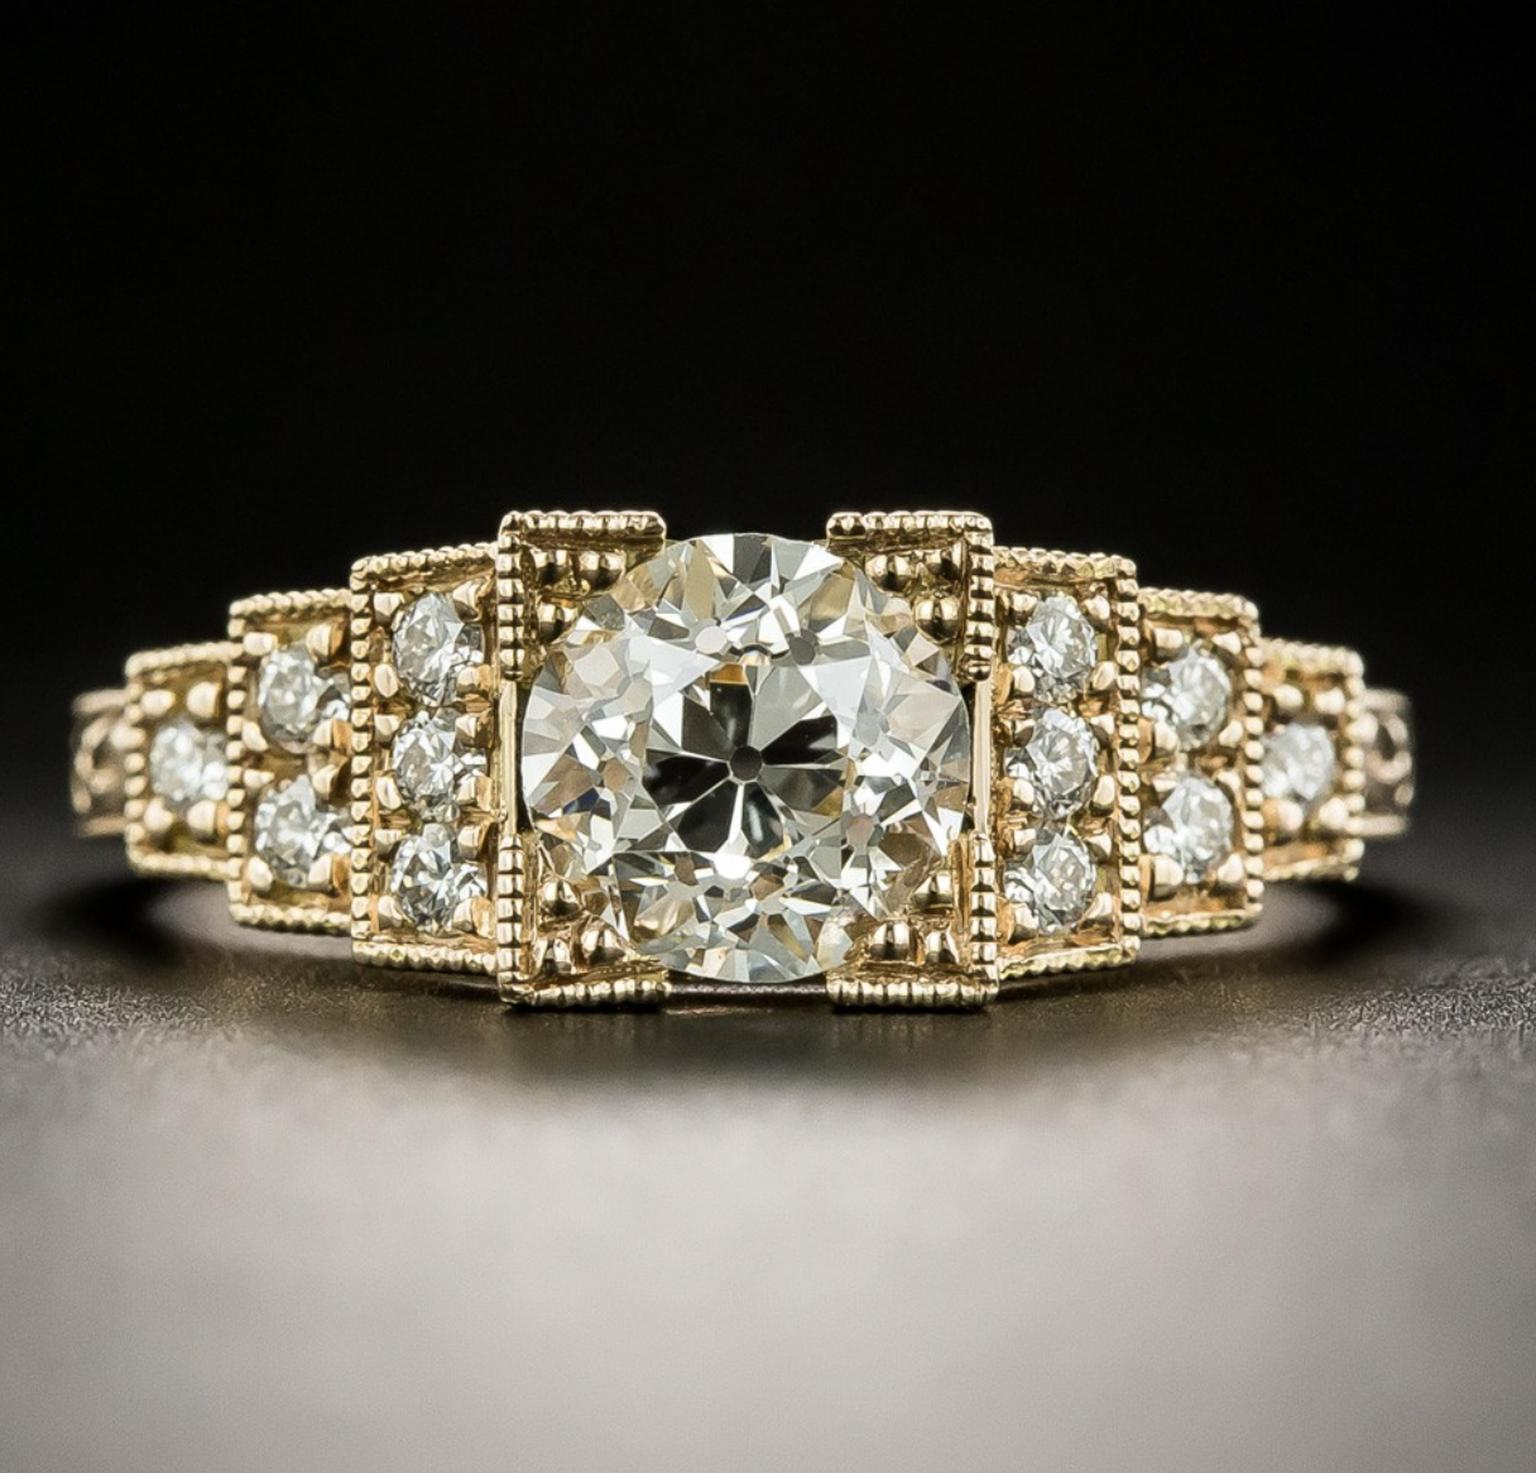 Diamond engagement ring sold by Lang Antiques